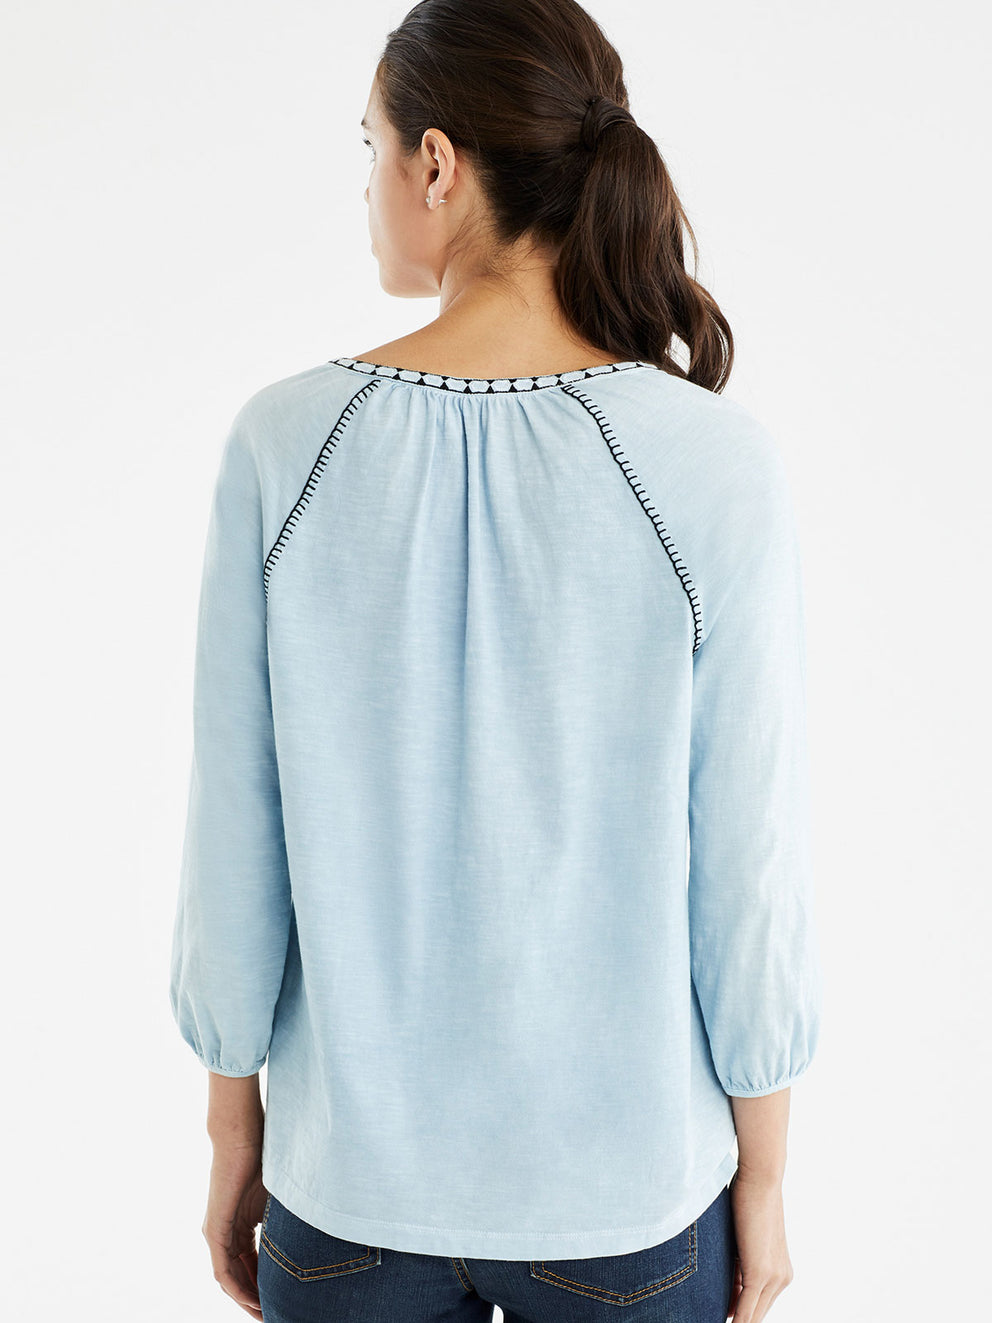 The Jones New York Embroidered Trim Tunic in color Pale Ocean - Image Position 3